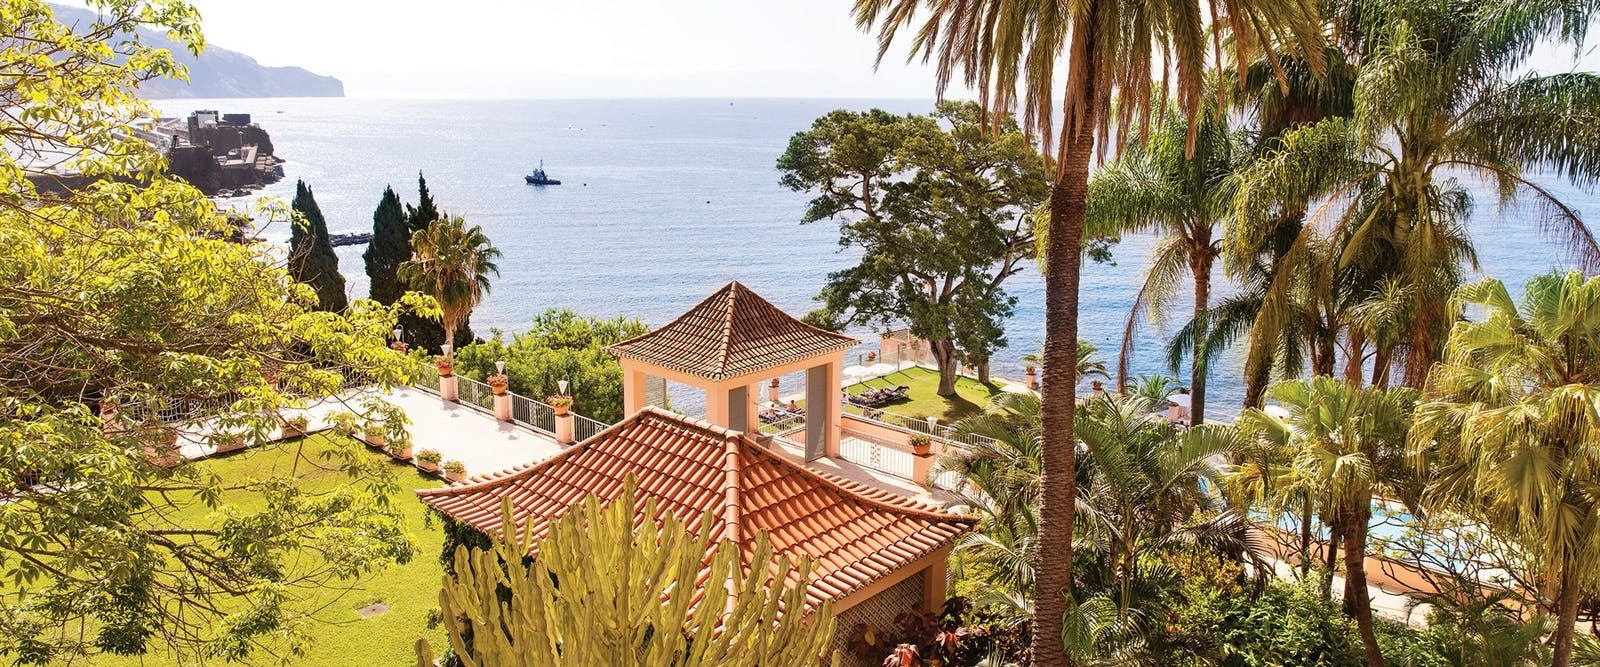 The View from Belmond Reids Palace, Madeira, Portugal